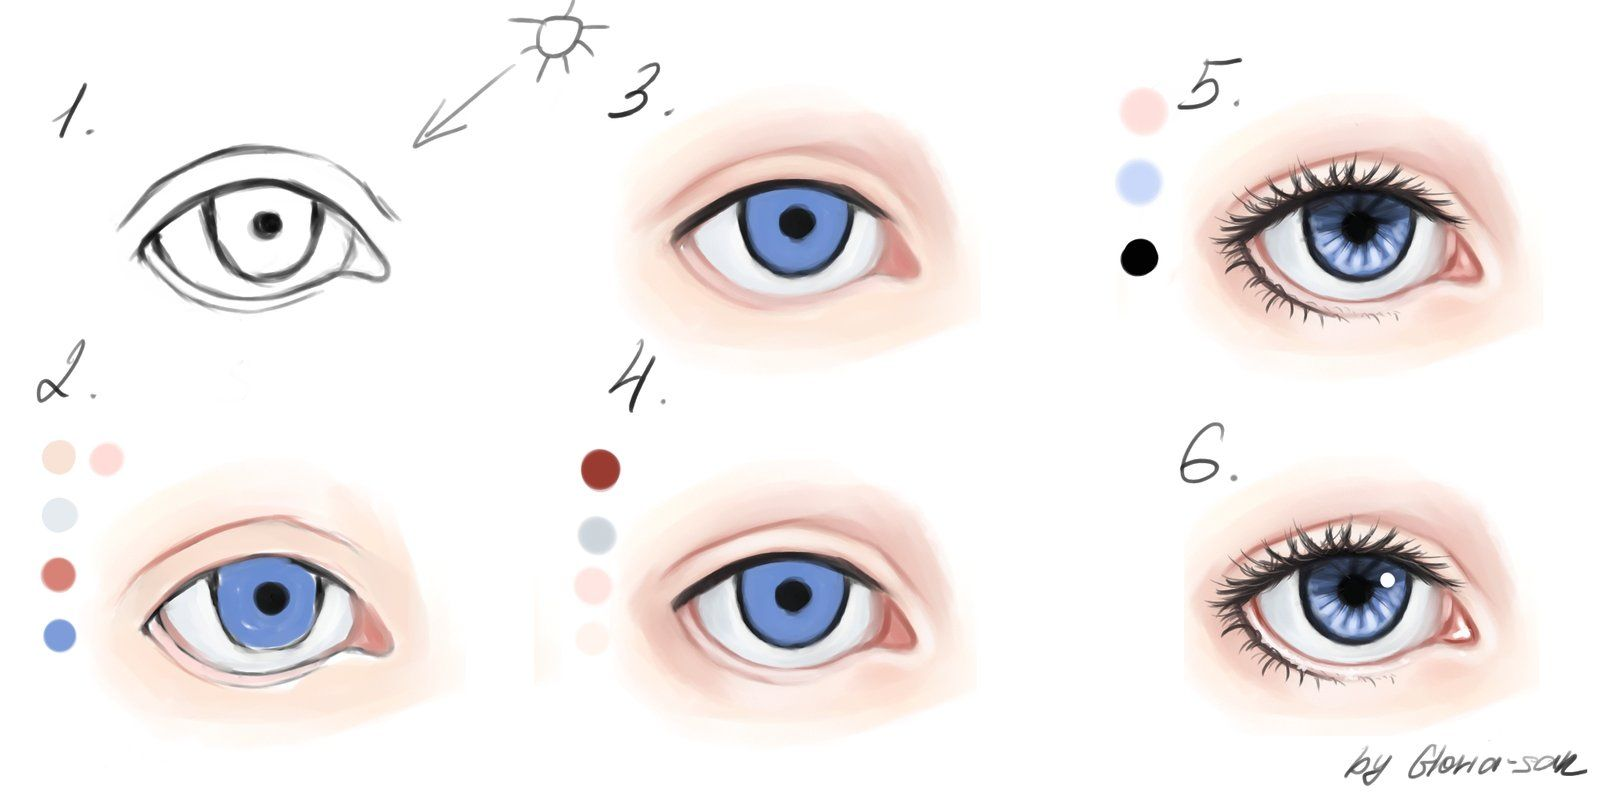 How To Draw Semi Realistic Eyes Google Search How To Draw 3 In